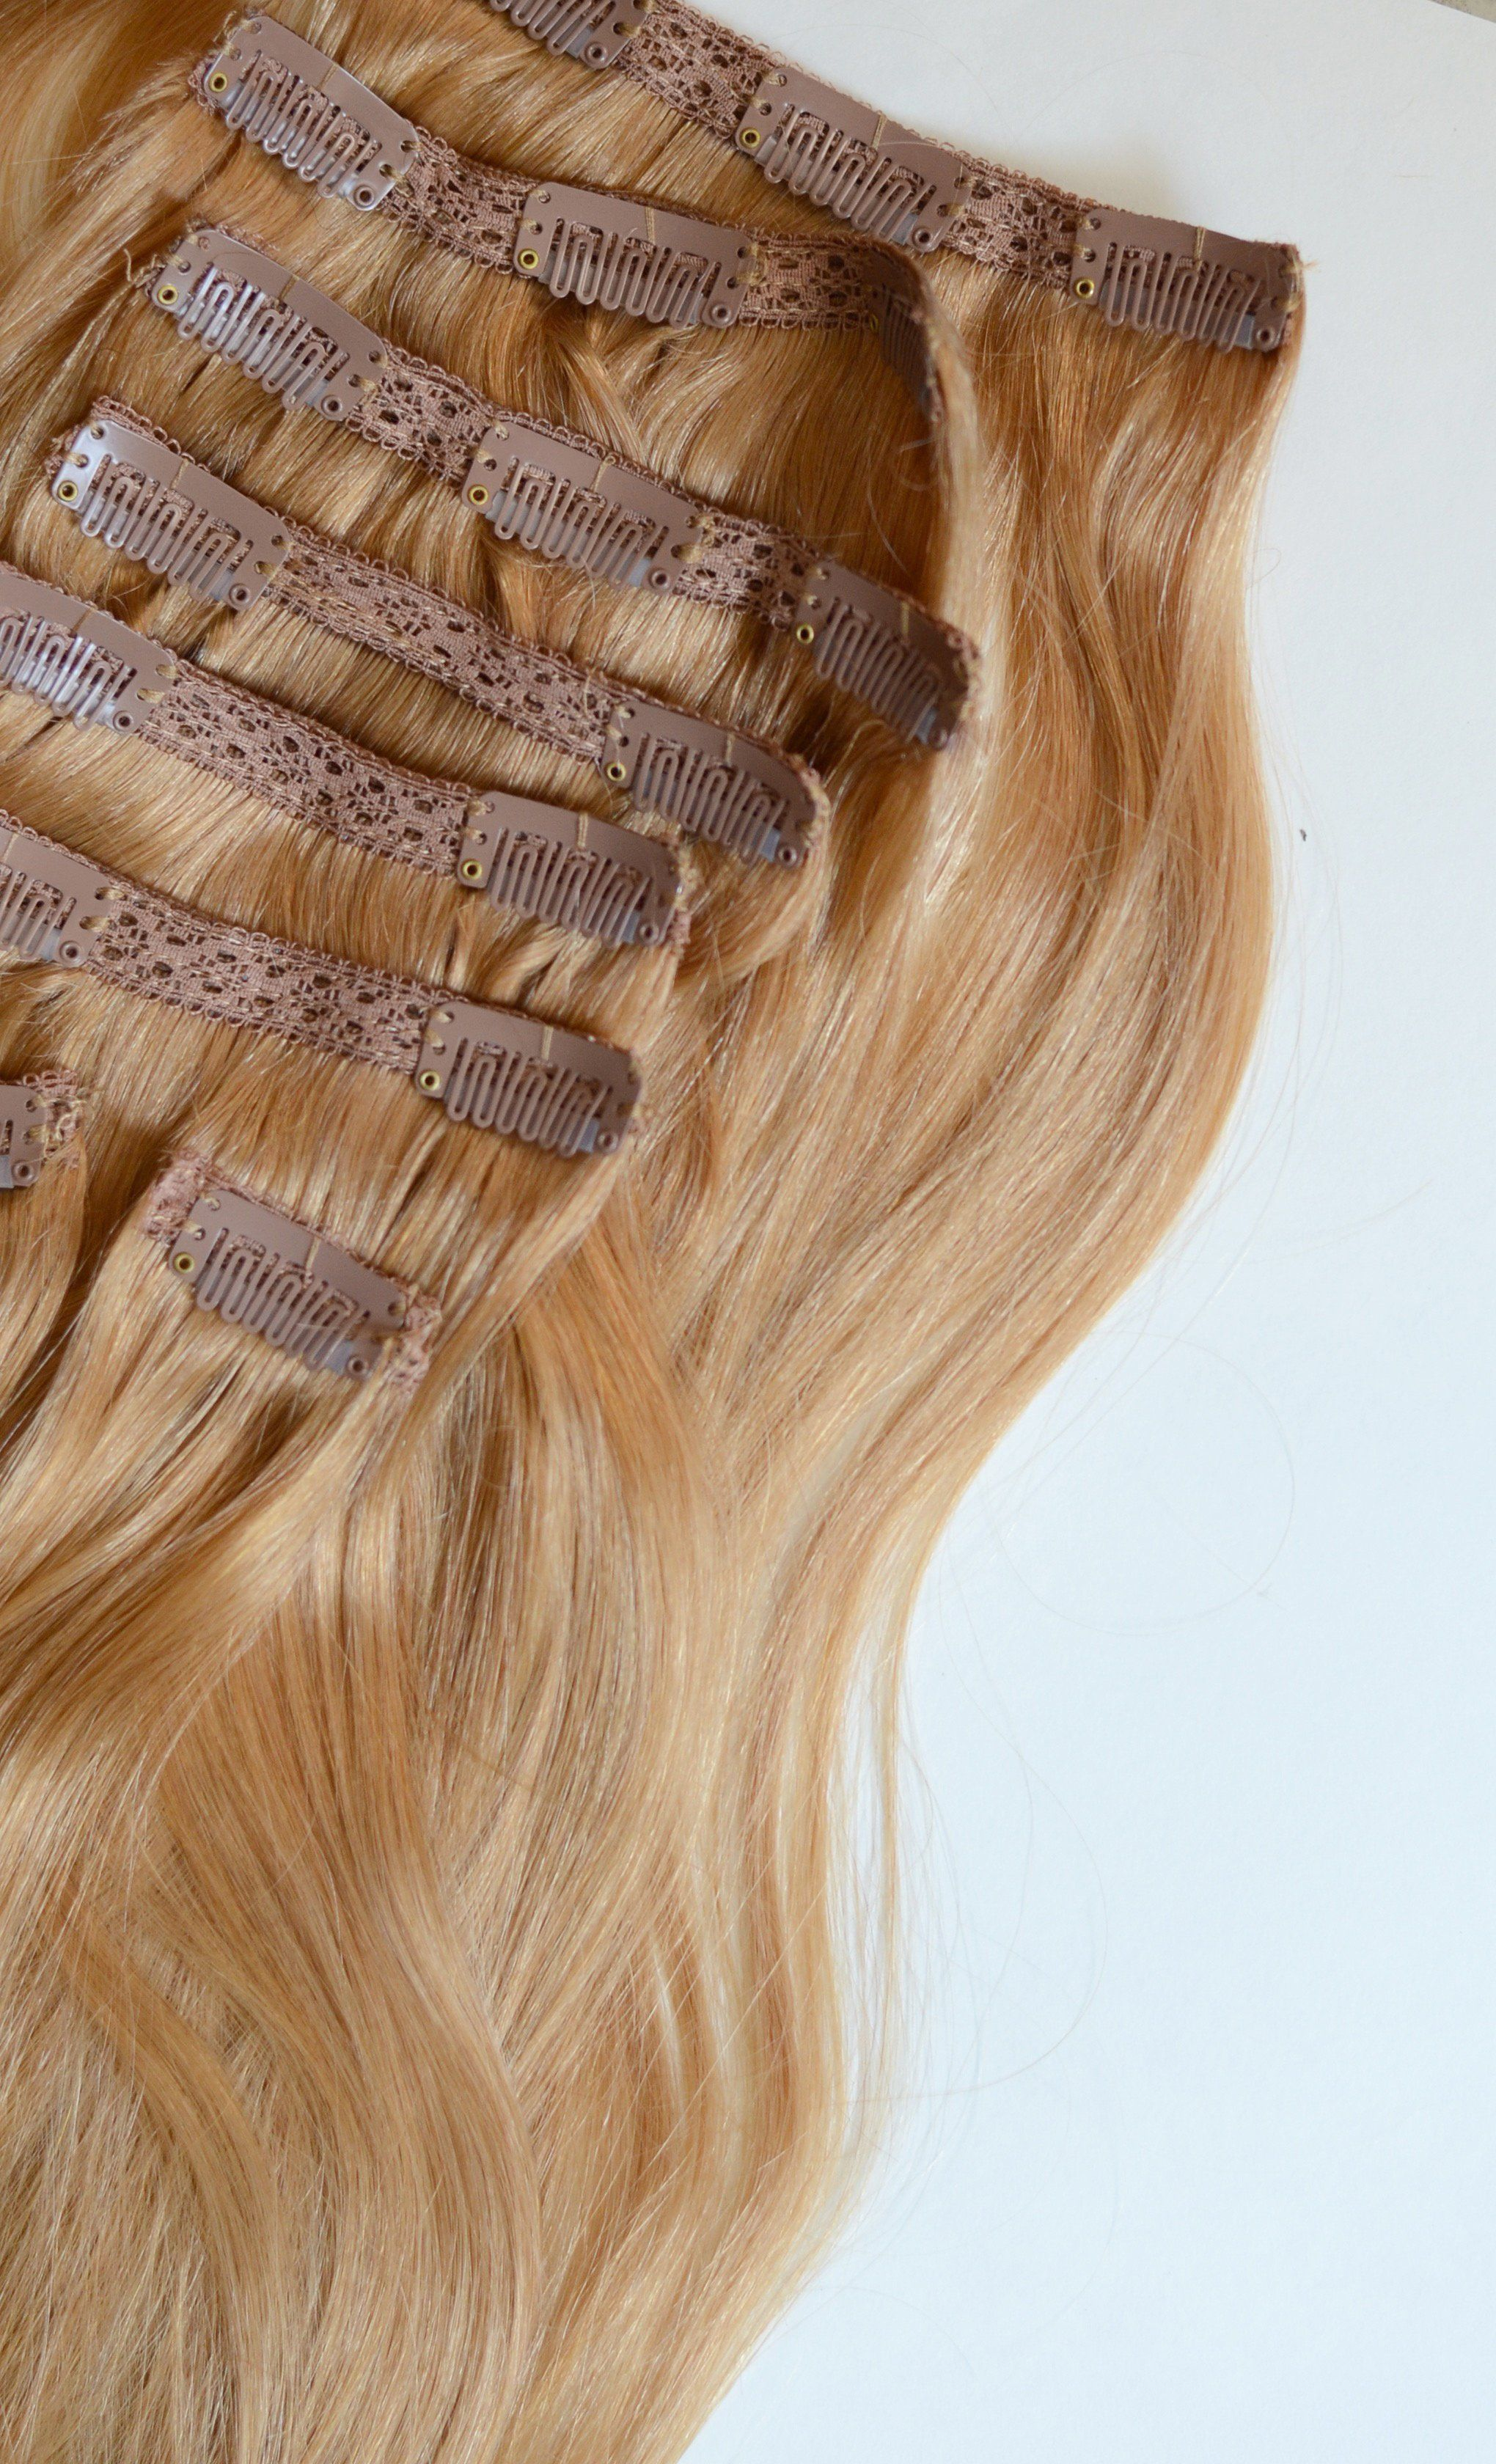 Strawberry Blonde Clip In Hair Extensions 20 Inch Set